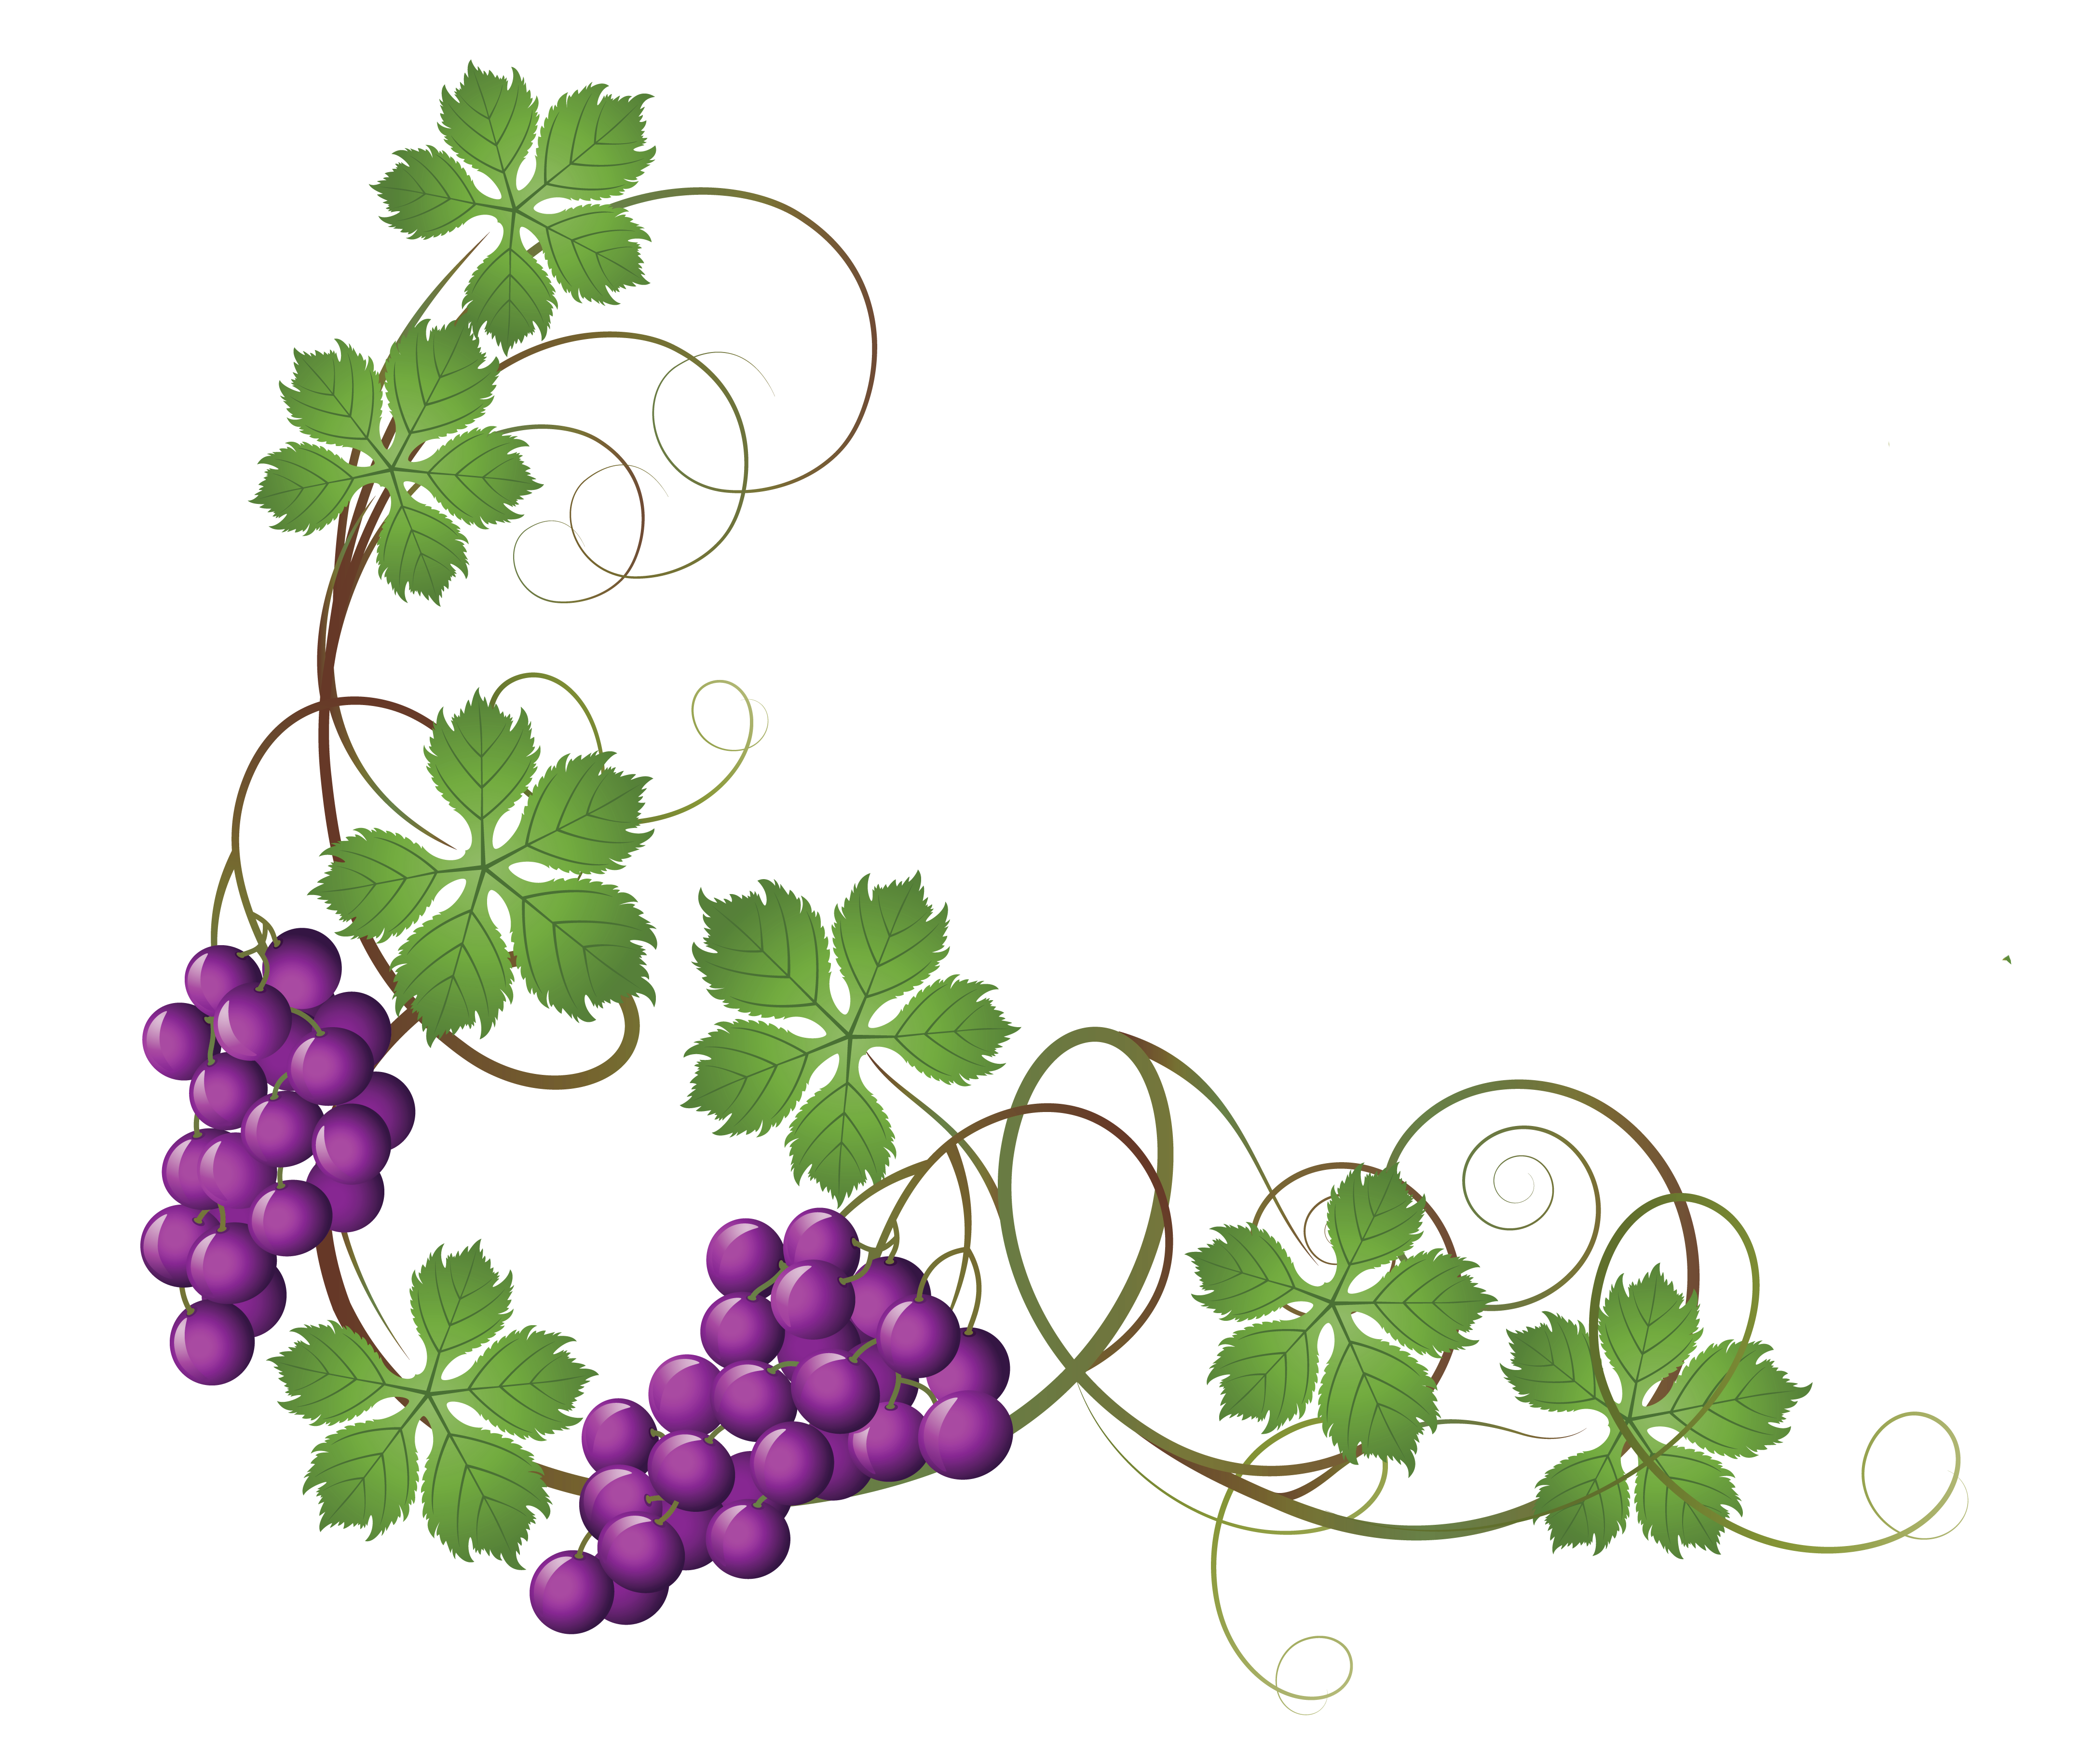 Cross vine flowers clipart svg black and white 28+ Collection of Vine Clipart Transparent | High quality, free ... svg black and white